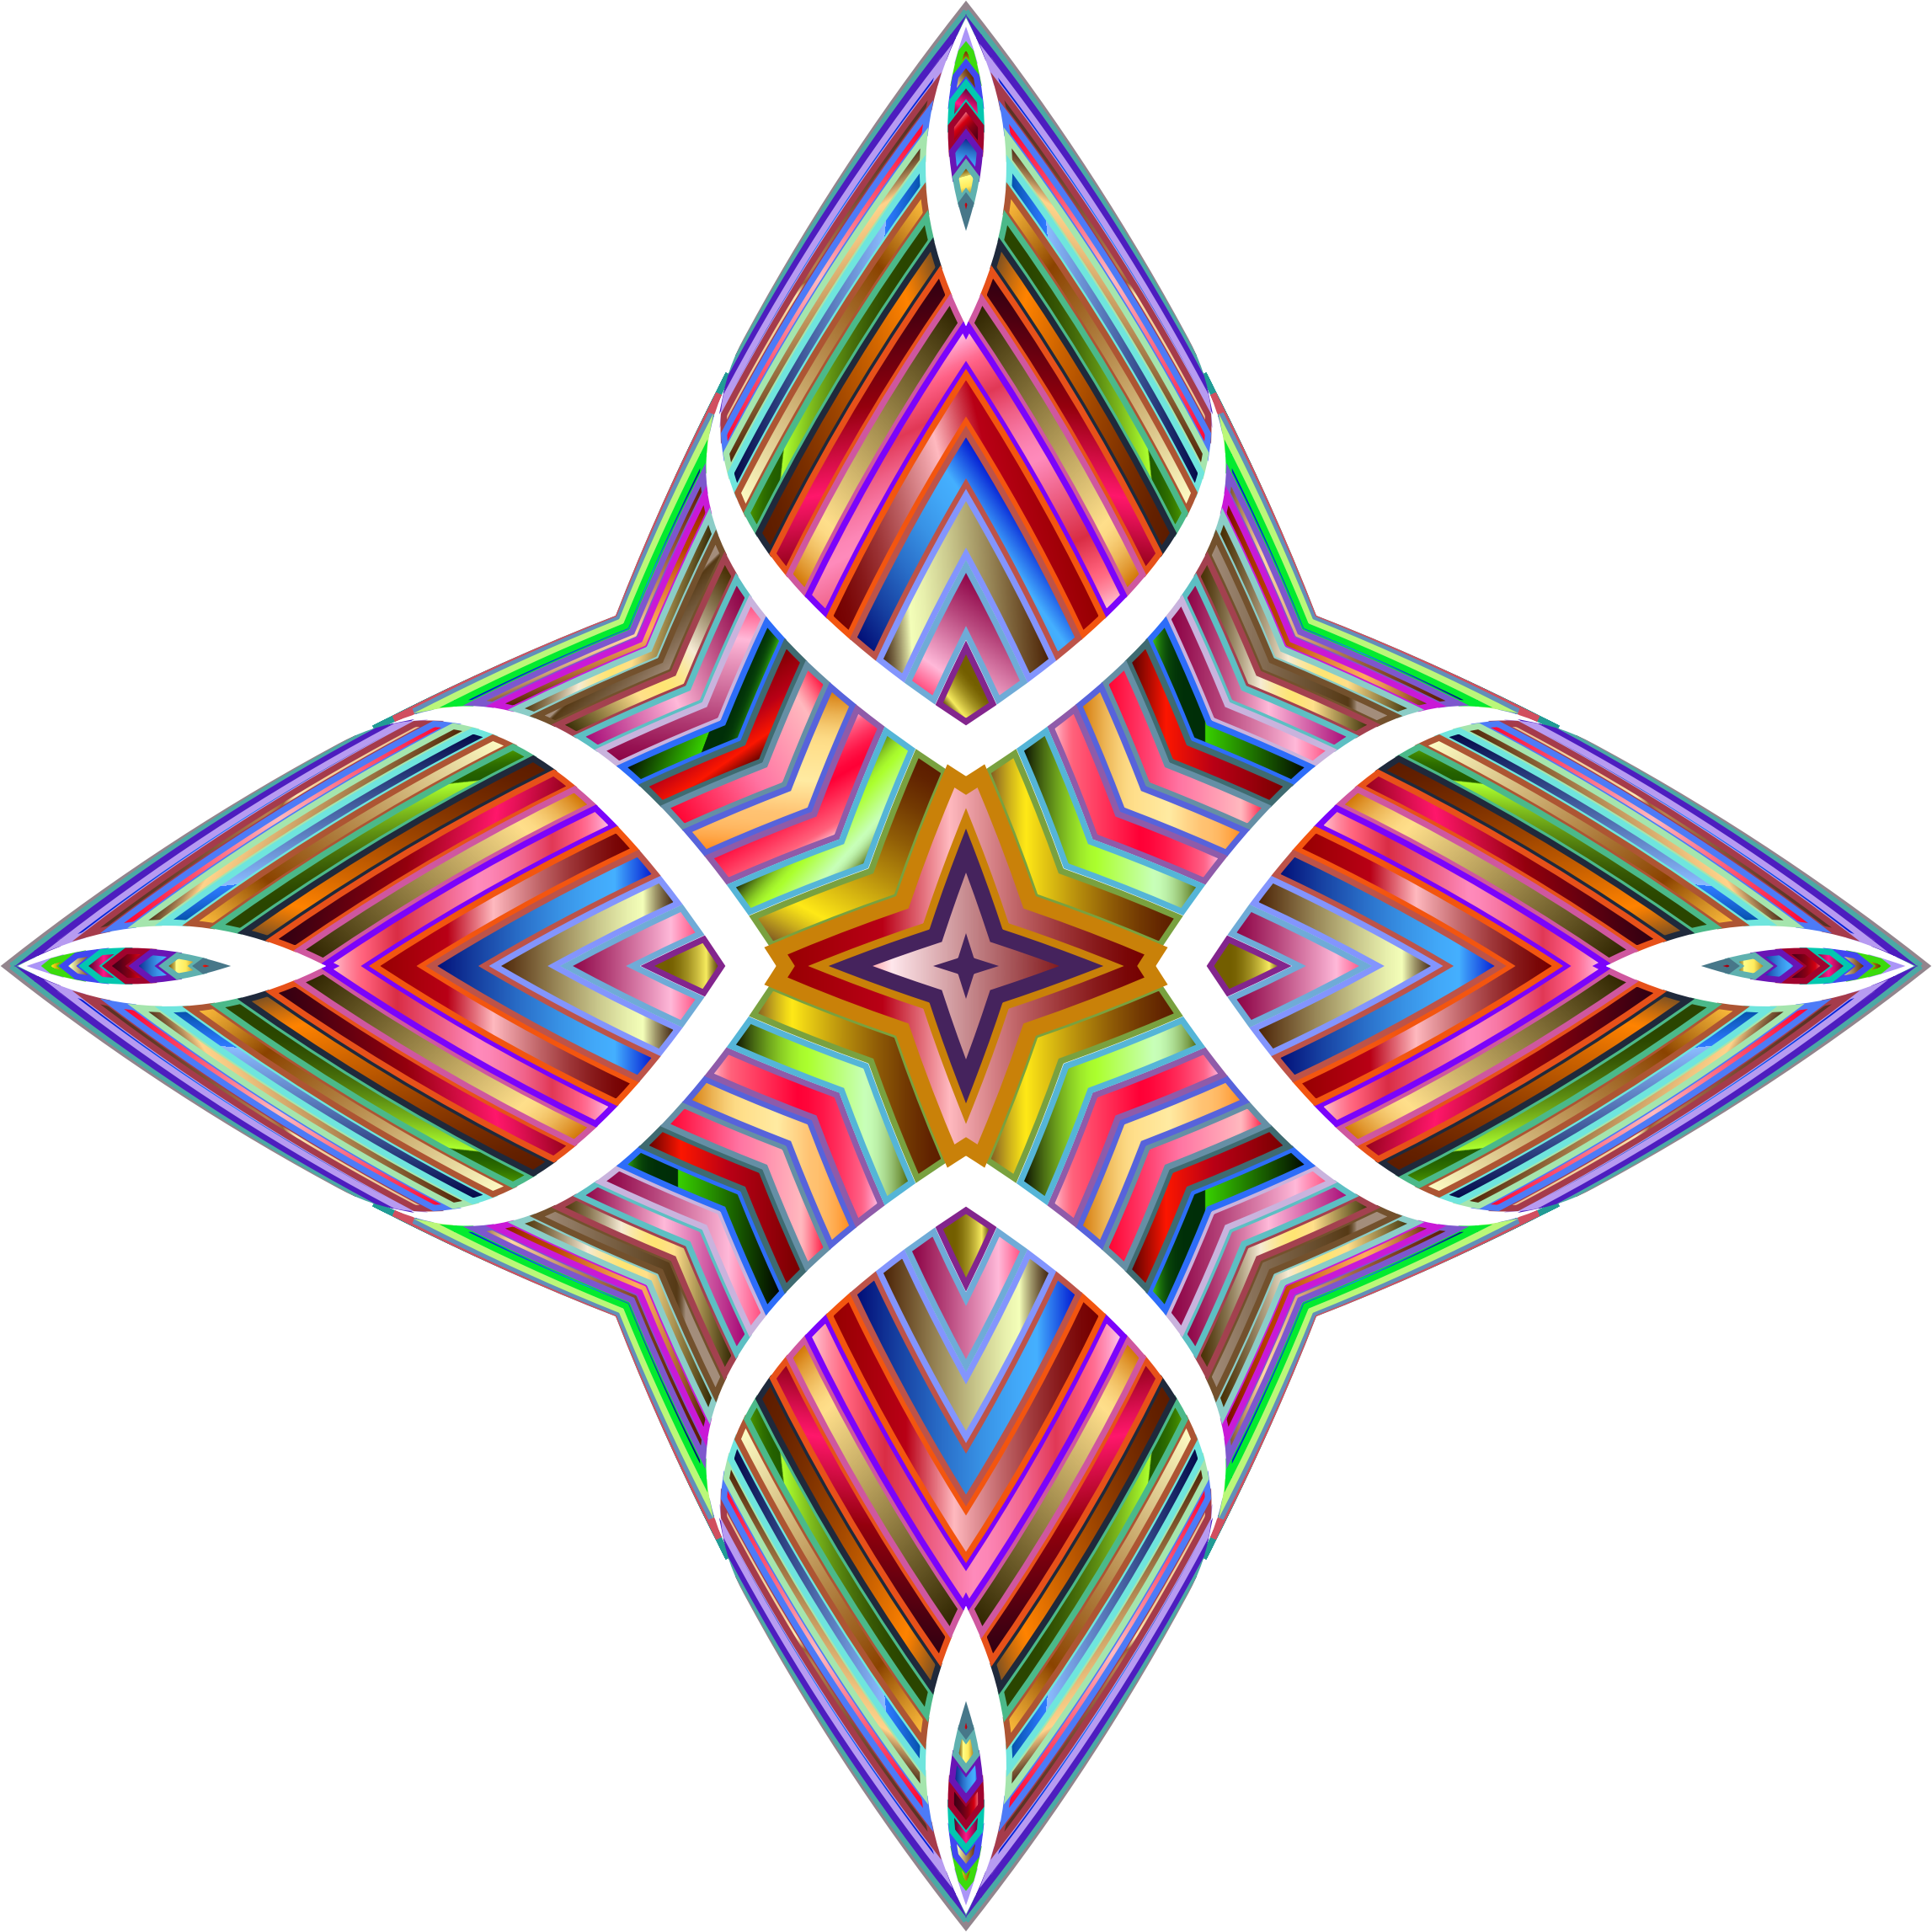 Chromatic Decorative Ornament by GDJ